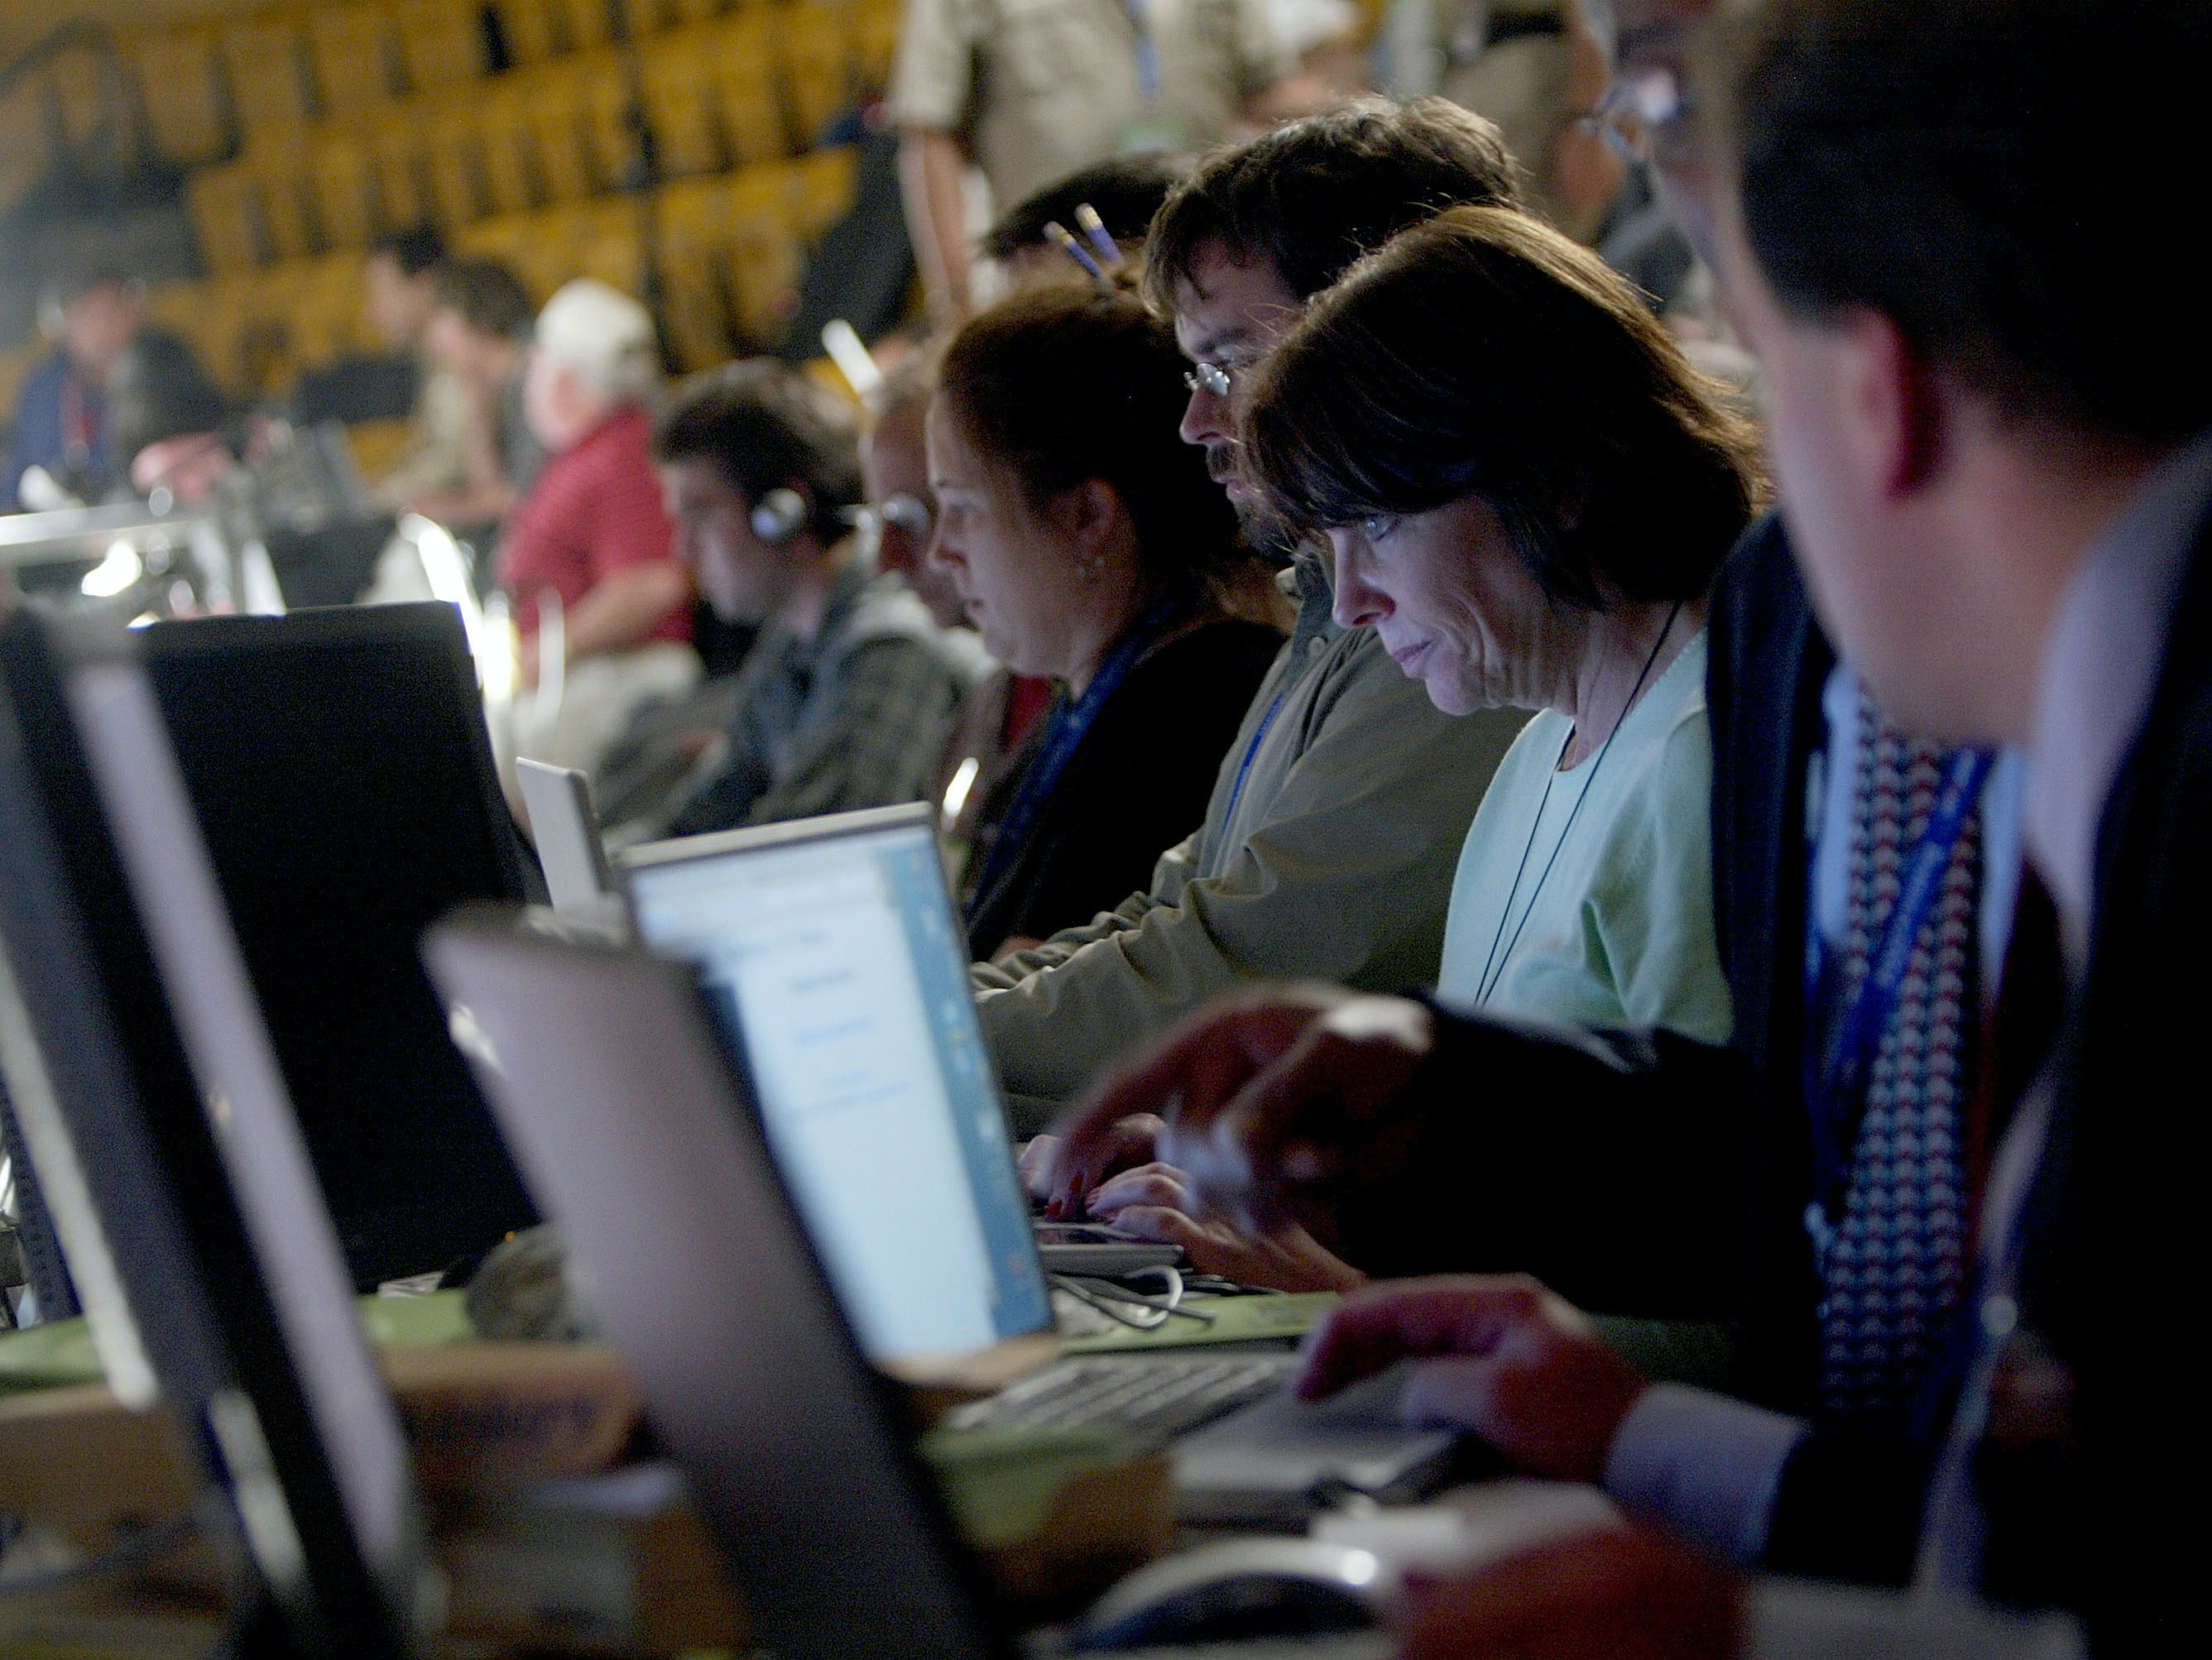 Internet bloggers work on their web log stories during the Democratic National Convention at the FleetCenter July 26, 2004 in Boston, Massachusetts. Democratic presidential candidate U.S. Senator John Kerry (D-MA) is expected to accept his party's nomination later in the week.